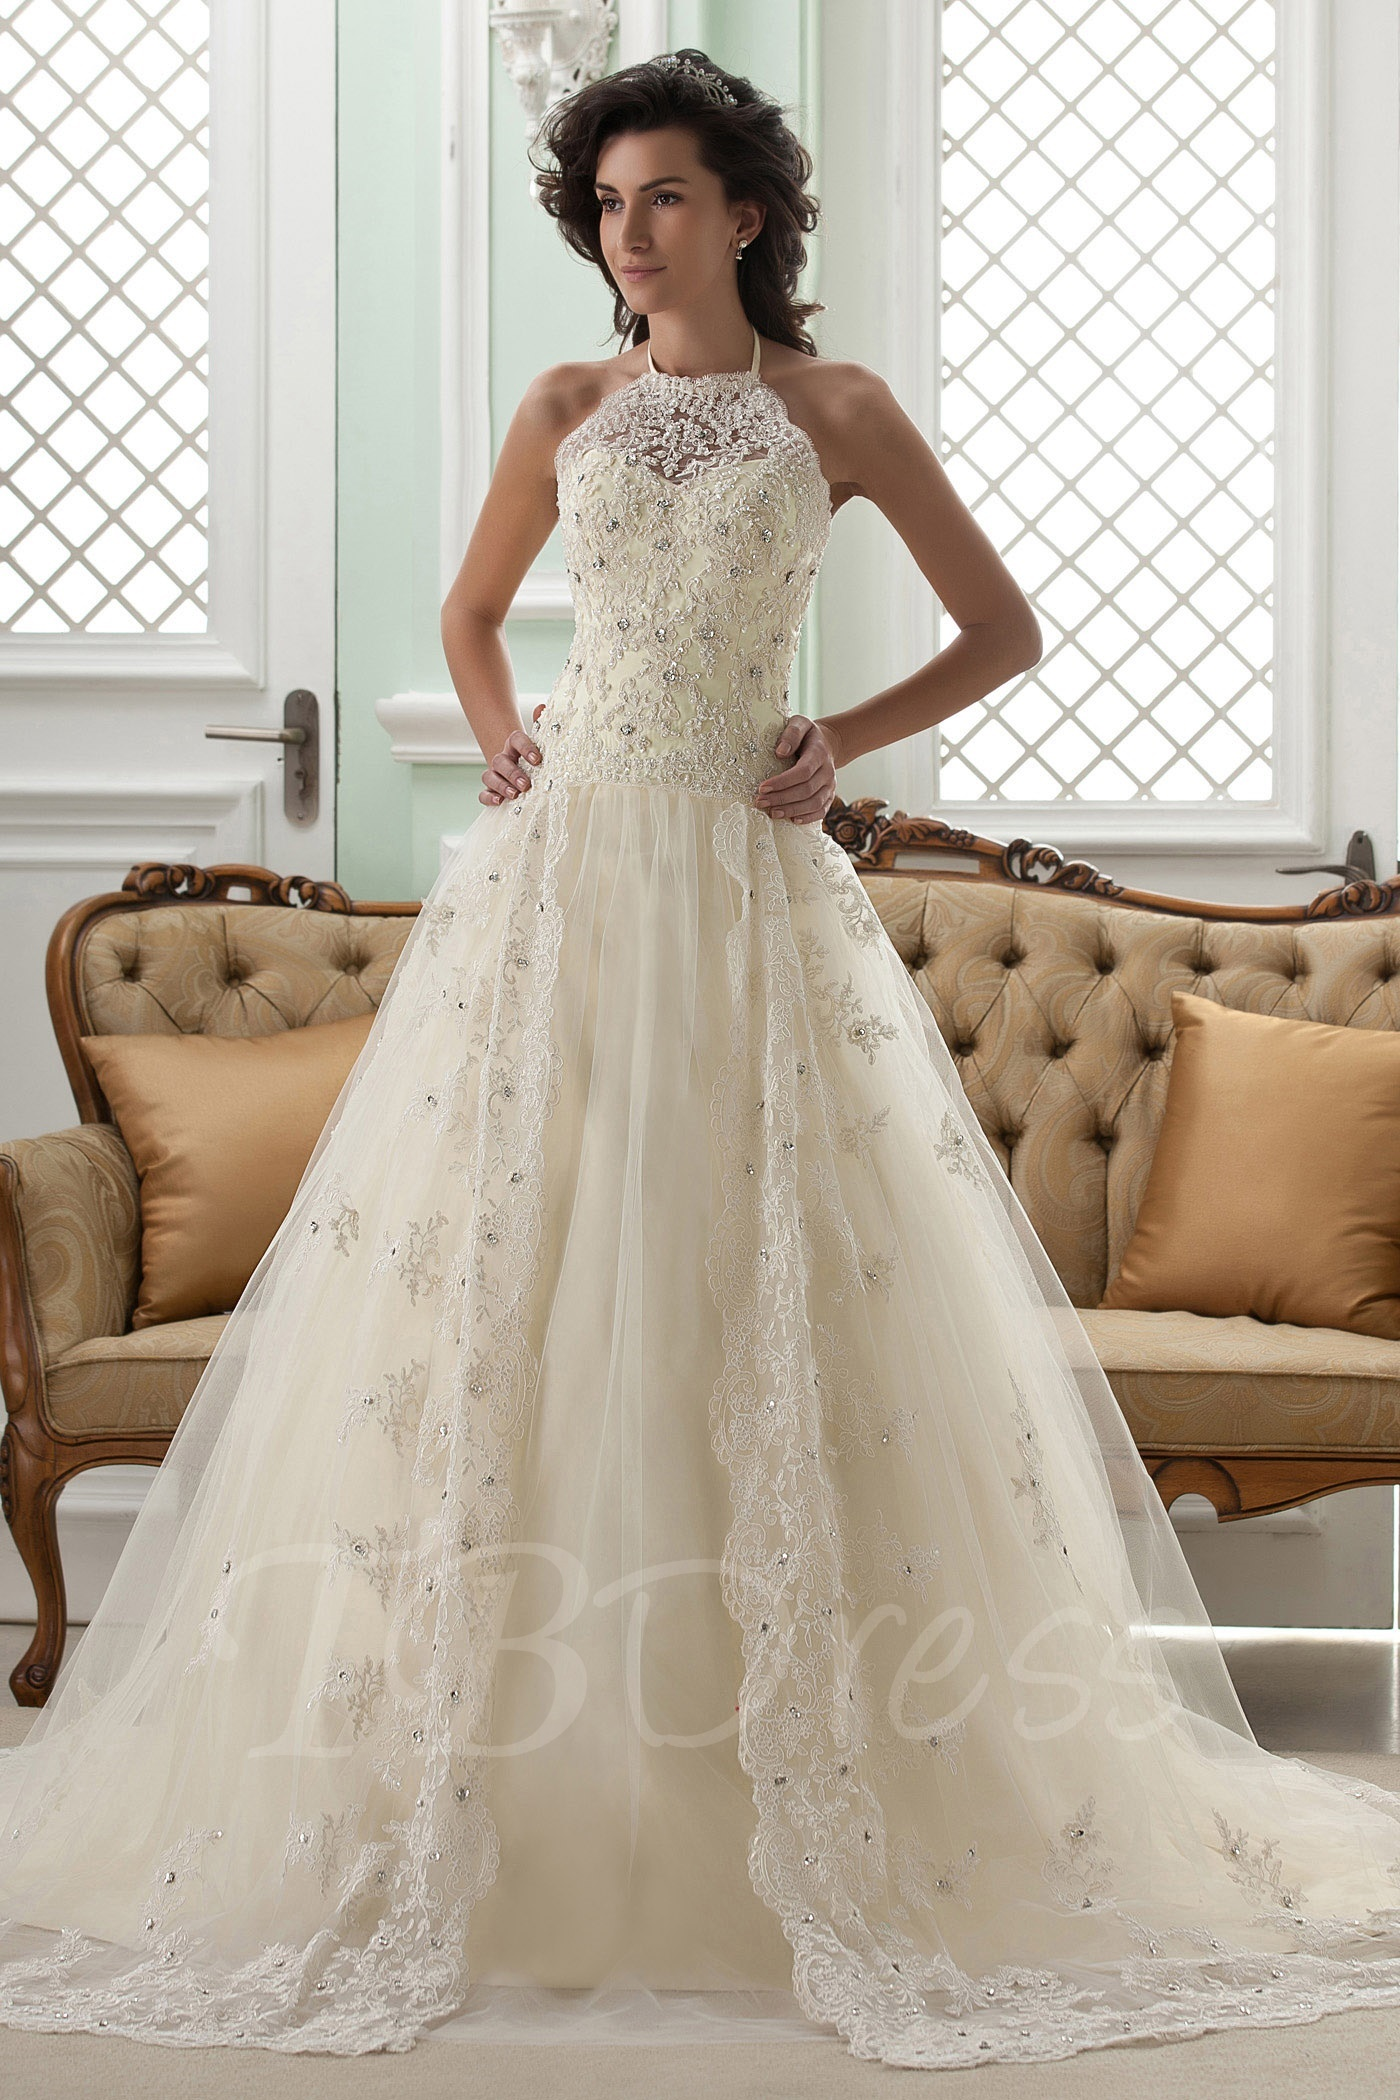 lace wedding gowns a-line halter neck sleeveless floor-length court appliques lace wedding  dress EHMPGWD